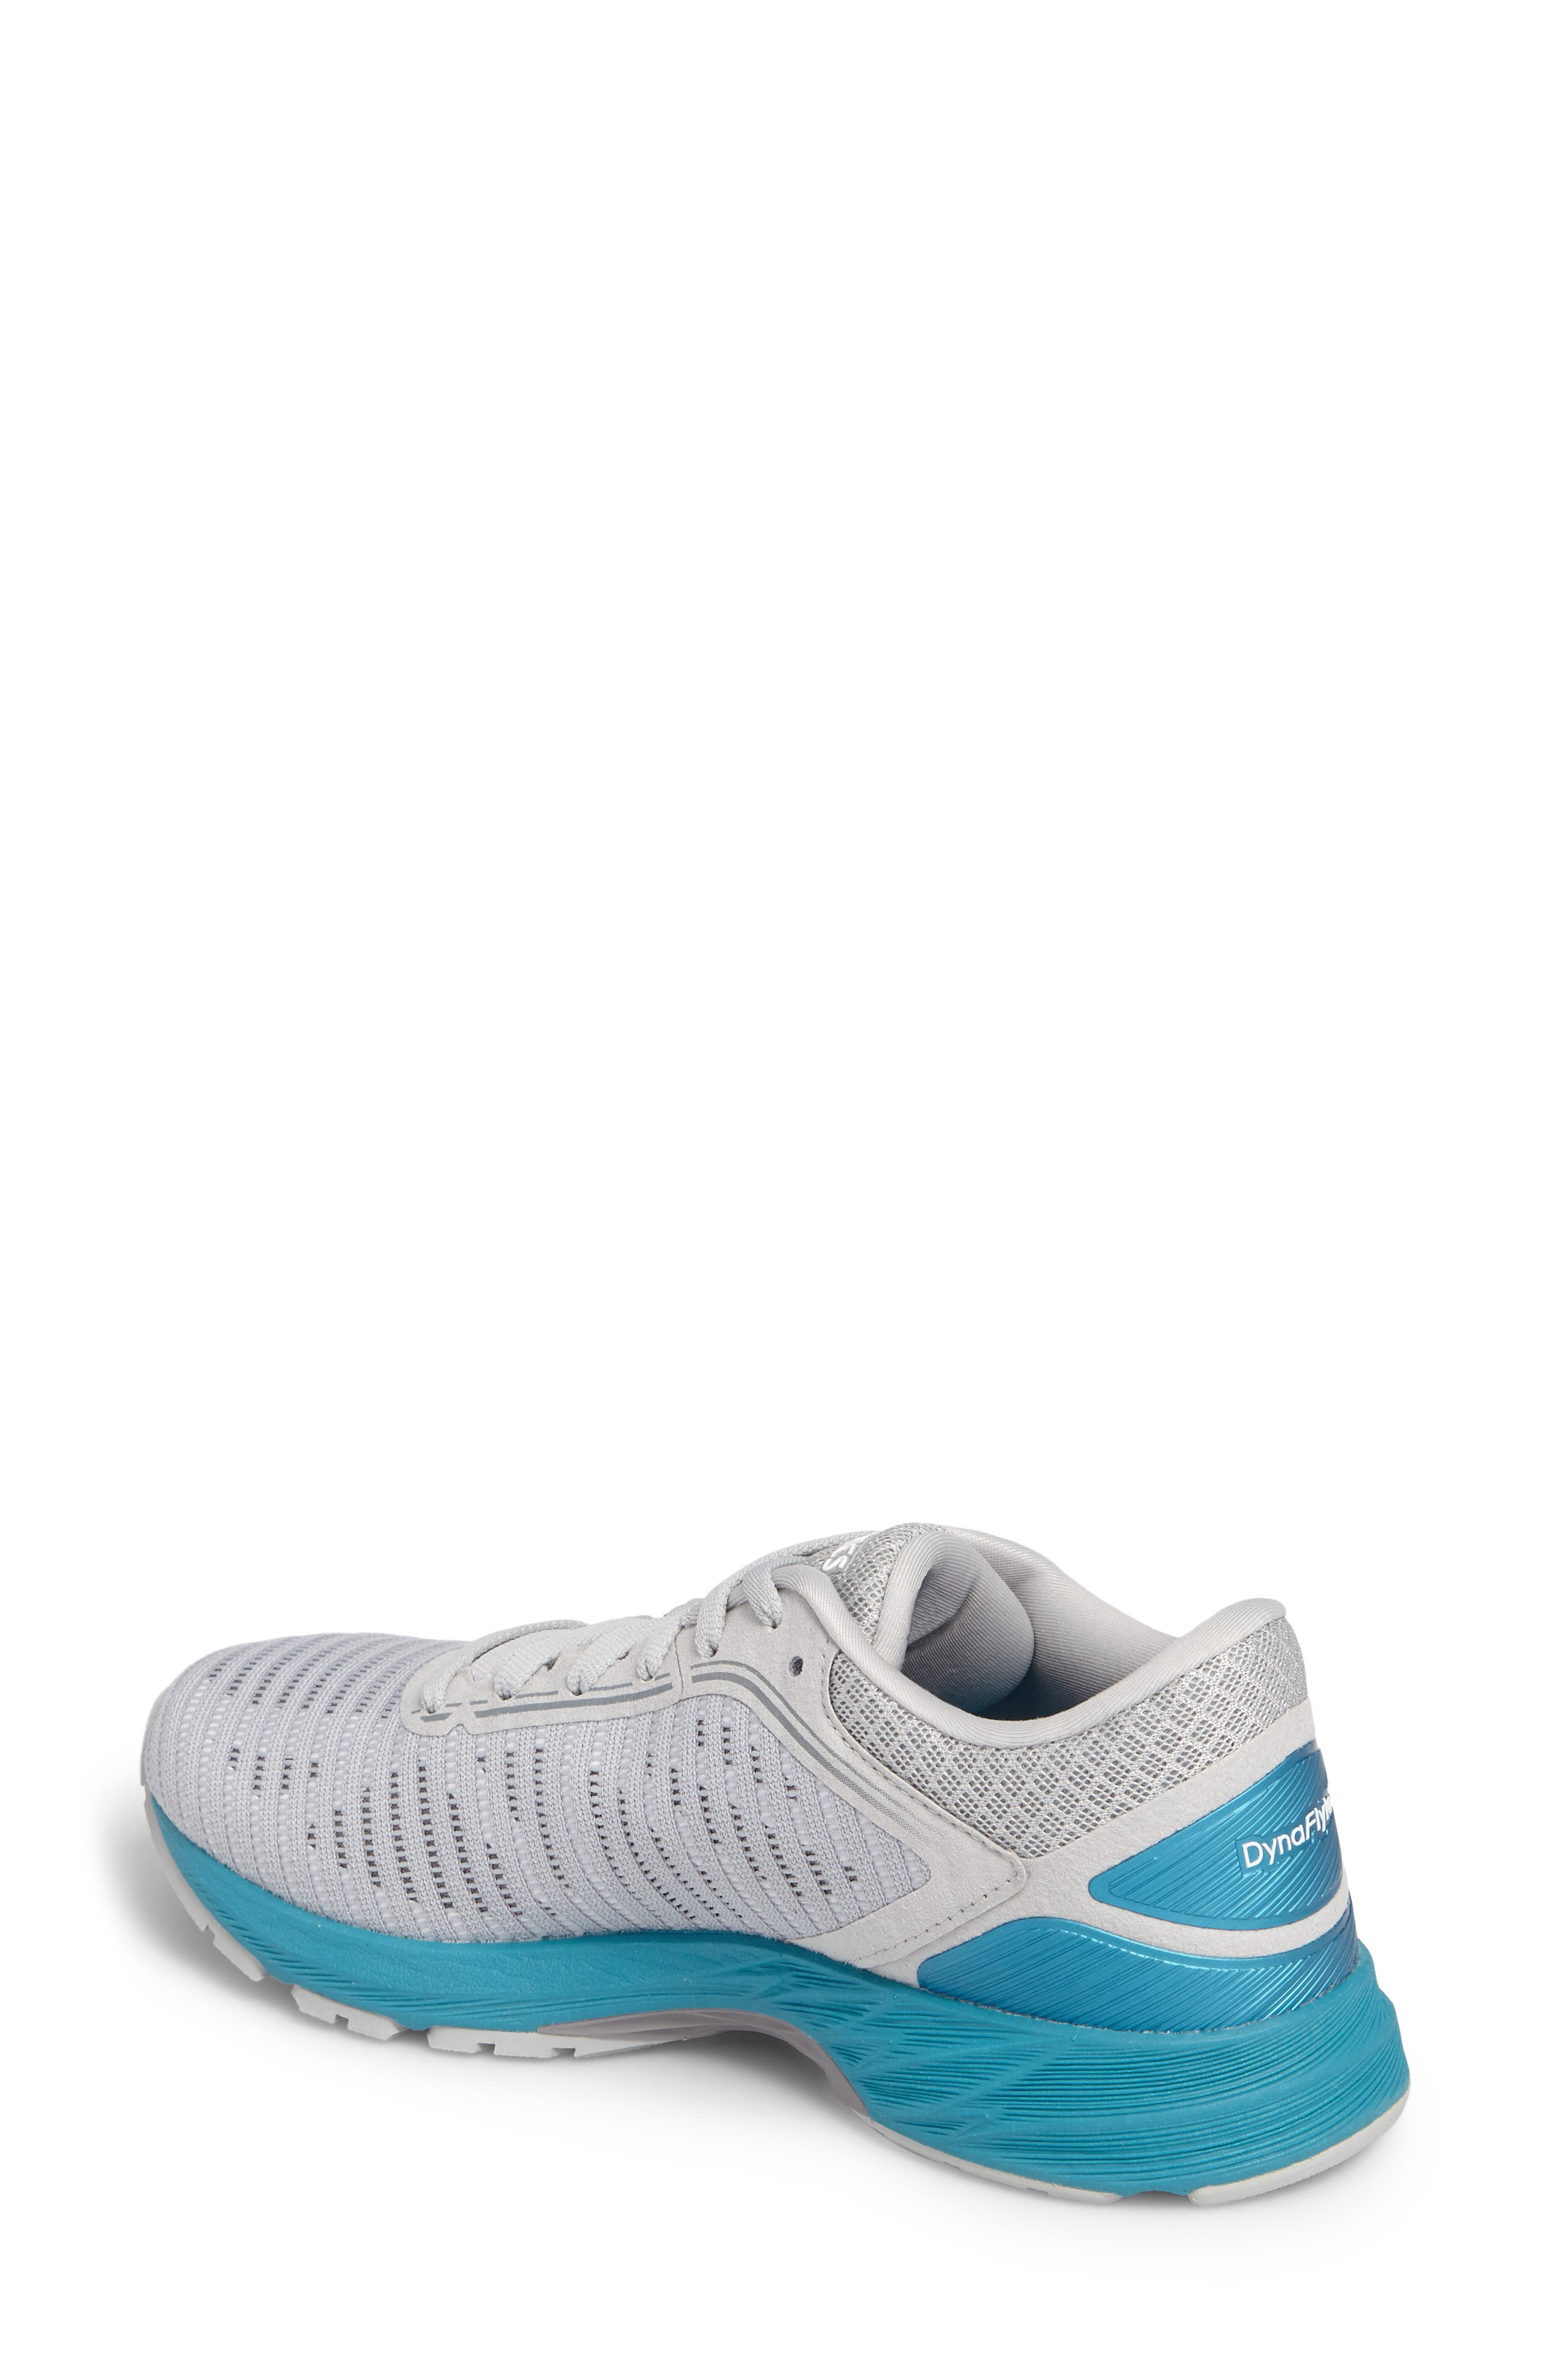 DynaFlyte 2 Running Shoe,                             Alternate thumbnail 2, color,                             MID GREY/ AQUA/ GLACIER